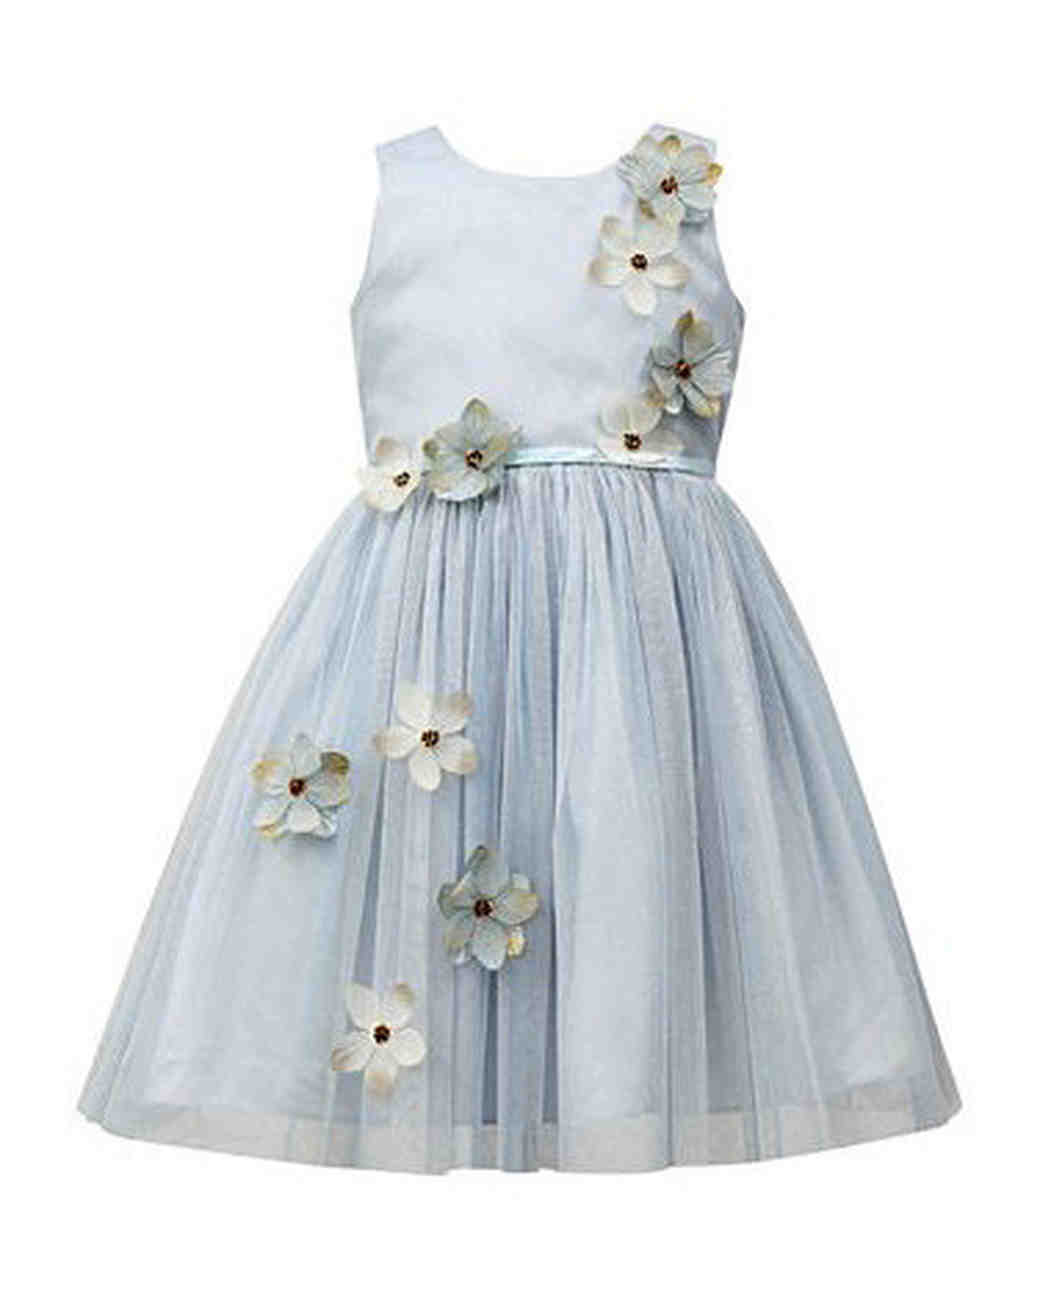 22 Flower Girl Dresses for a Spring Wedding | Martha Stewart Weddings